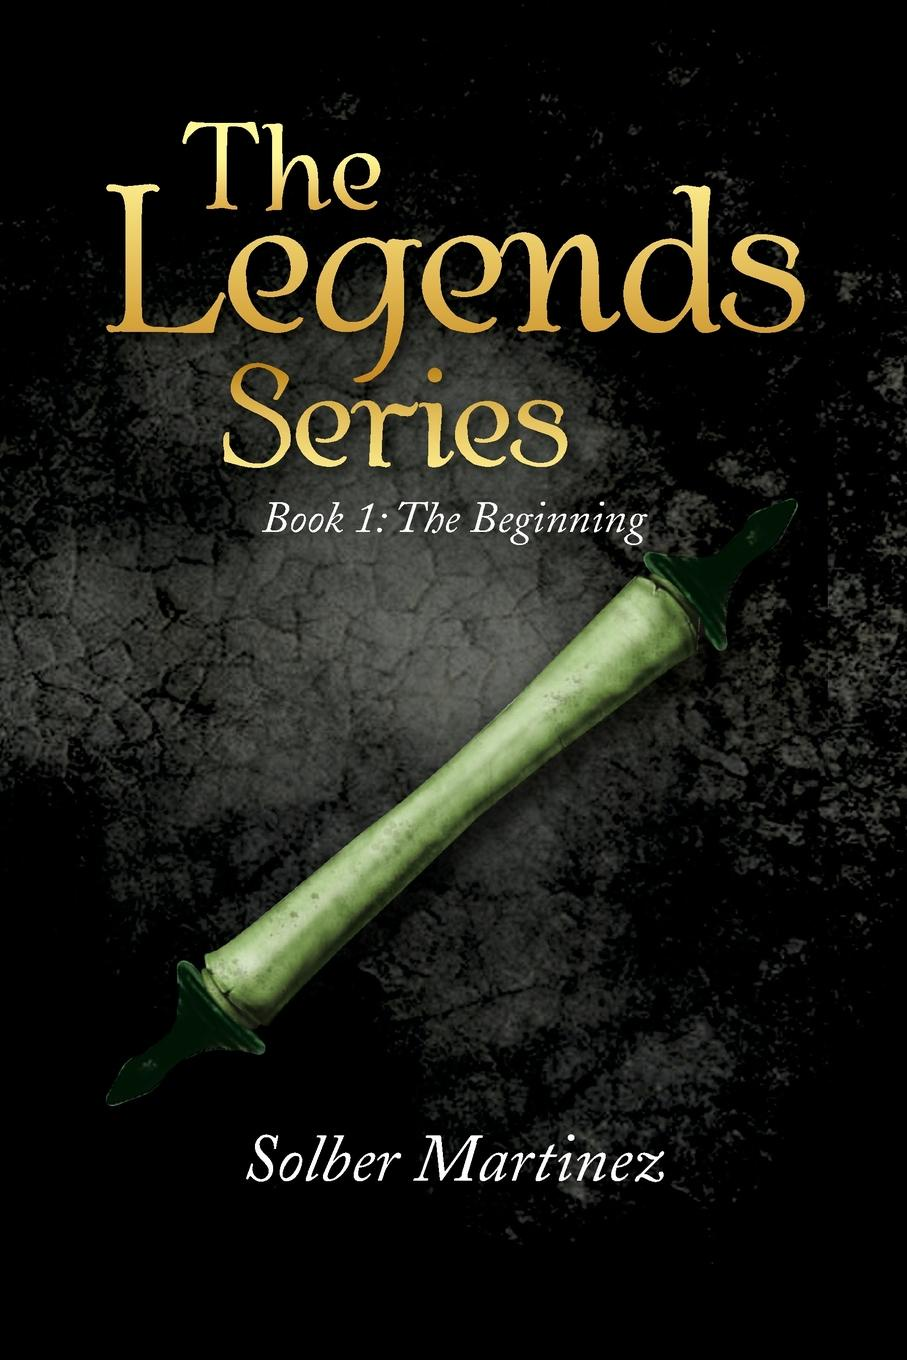 Solber Martinez The Legends Series. Book 1: The Beginning